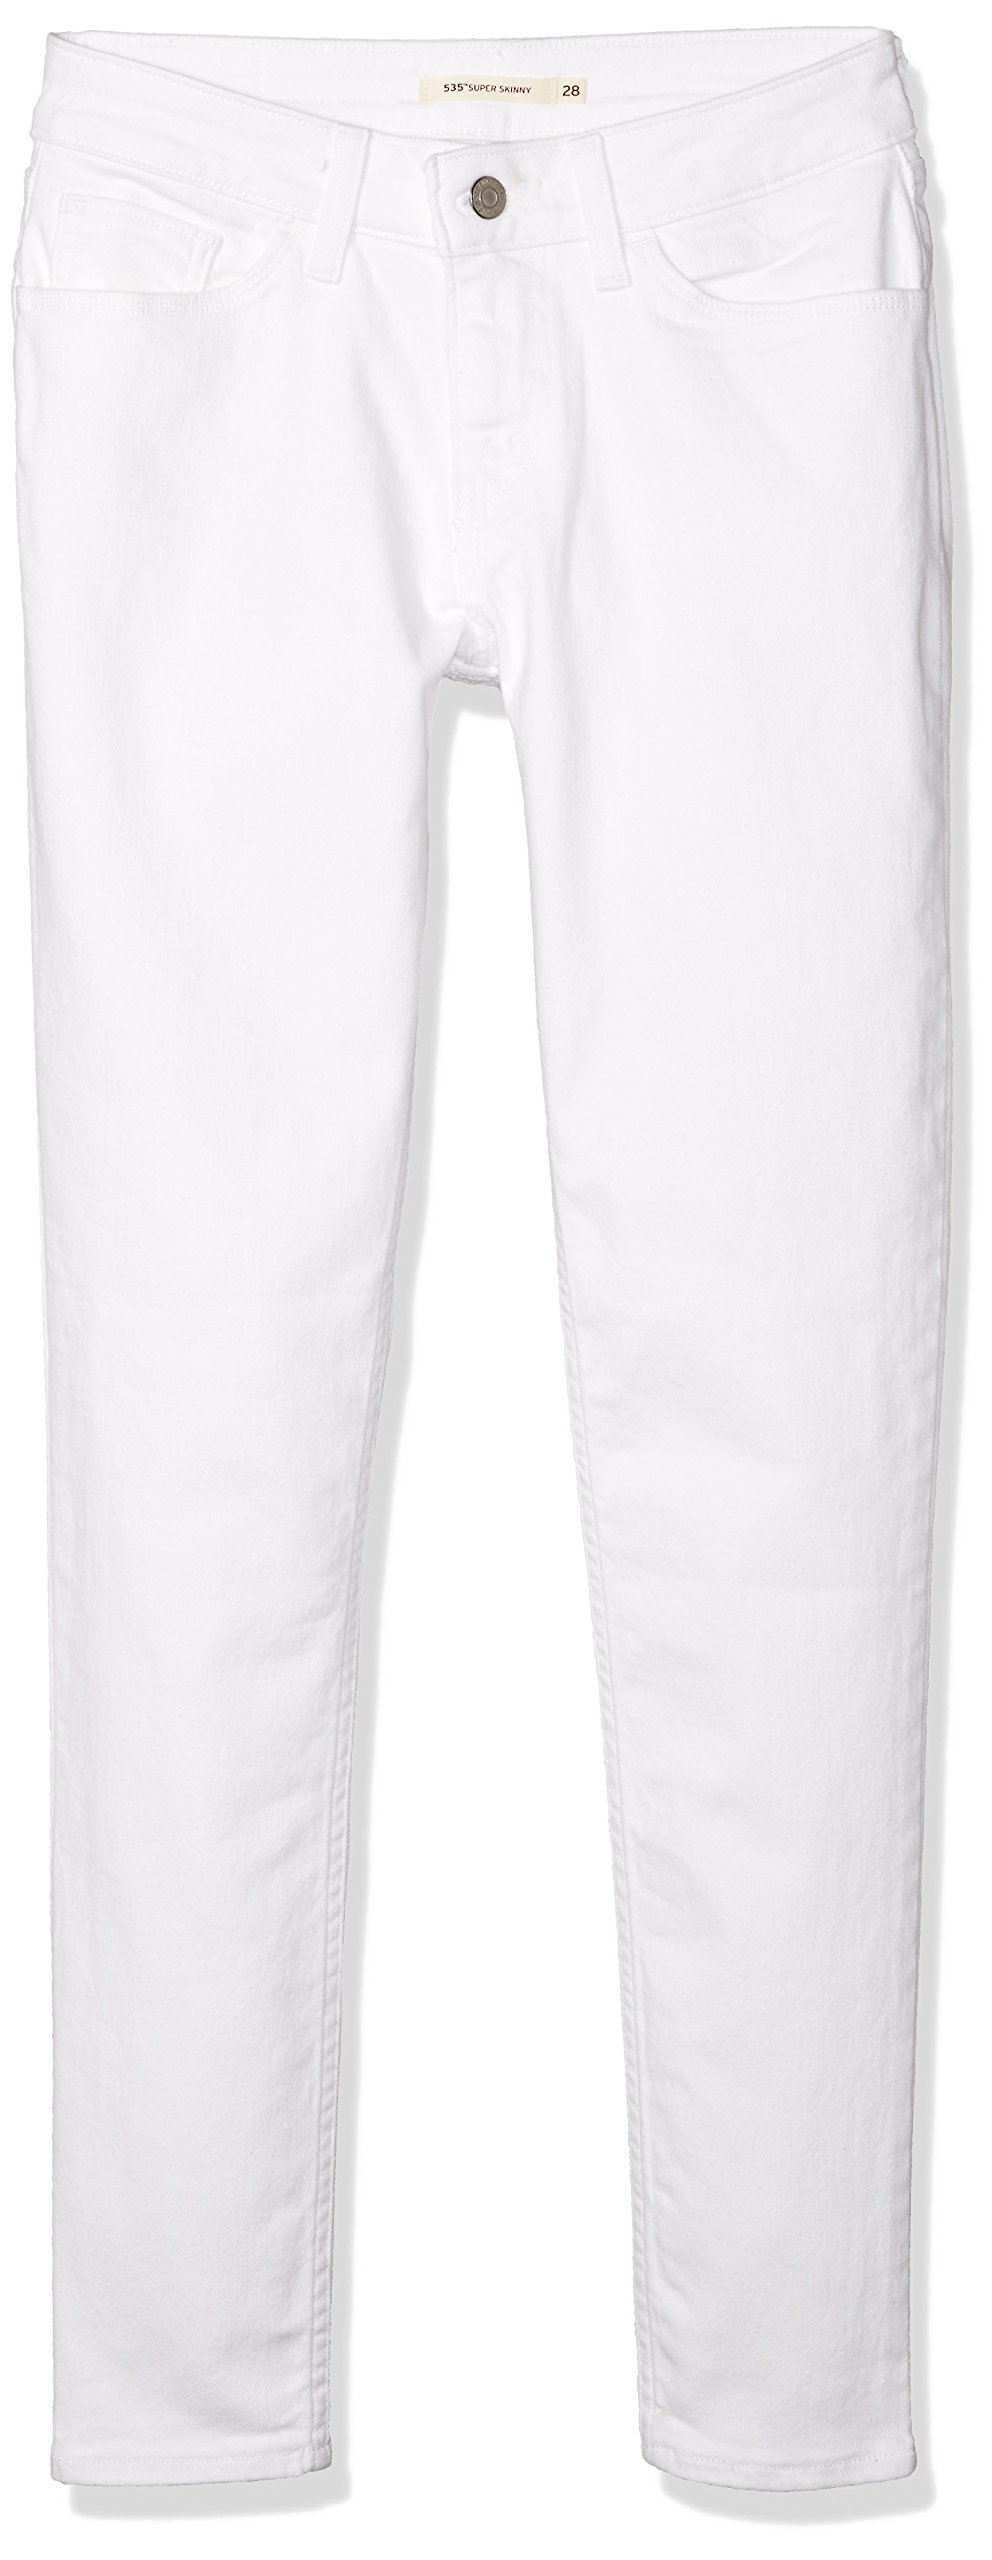 Levi's Women's 535 Super Skinny Jeans, Soft White, 27 (US 5) R